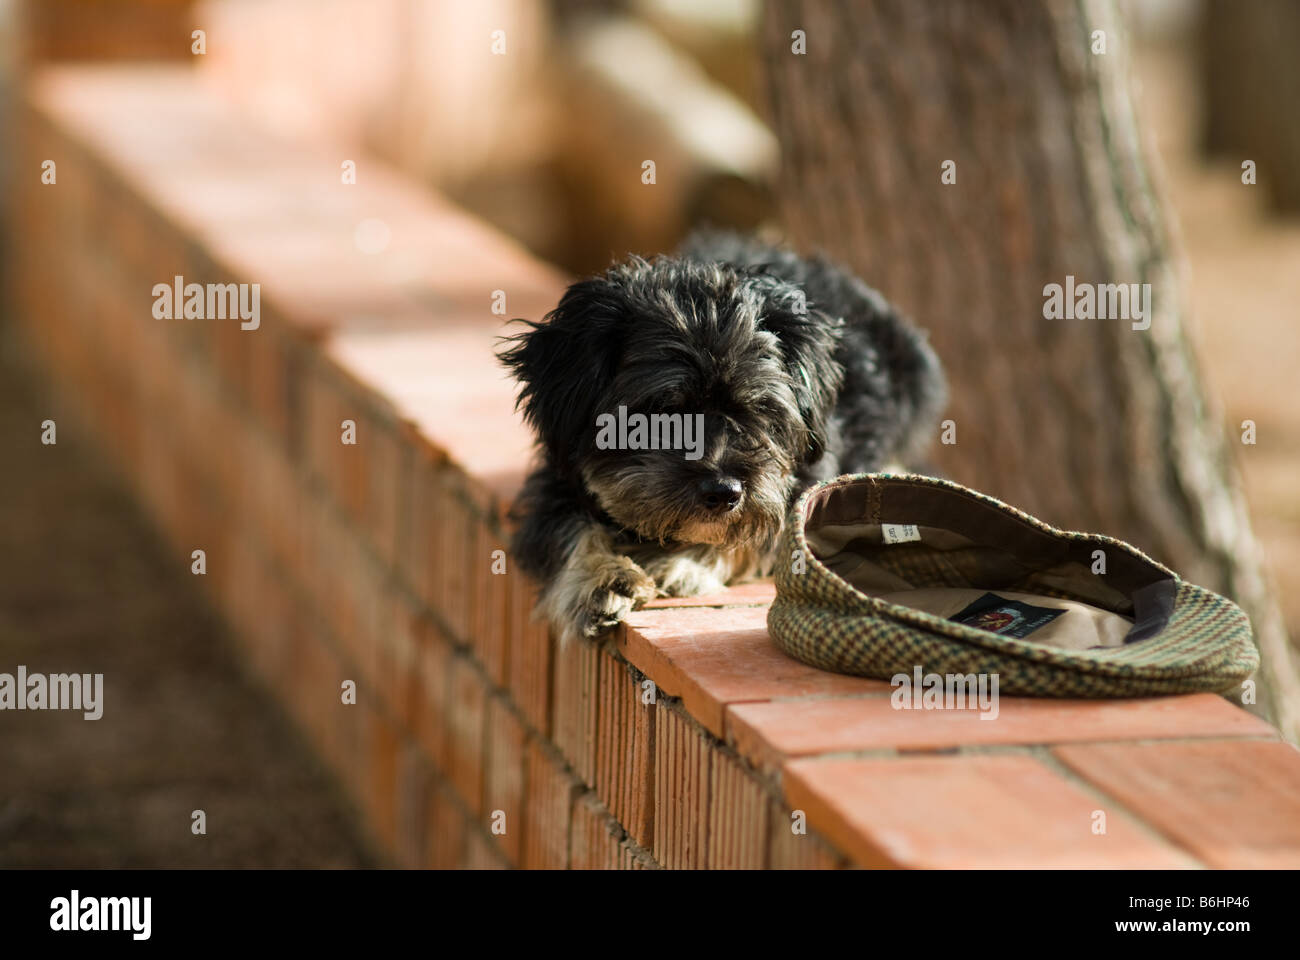 Dog laying in the sun in Spain peering at a Flat Cap - Stock Image